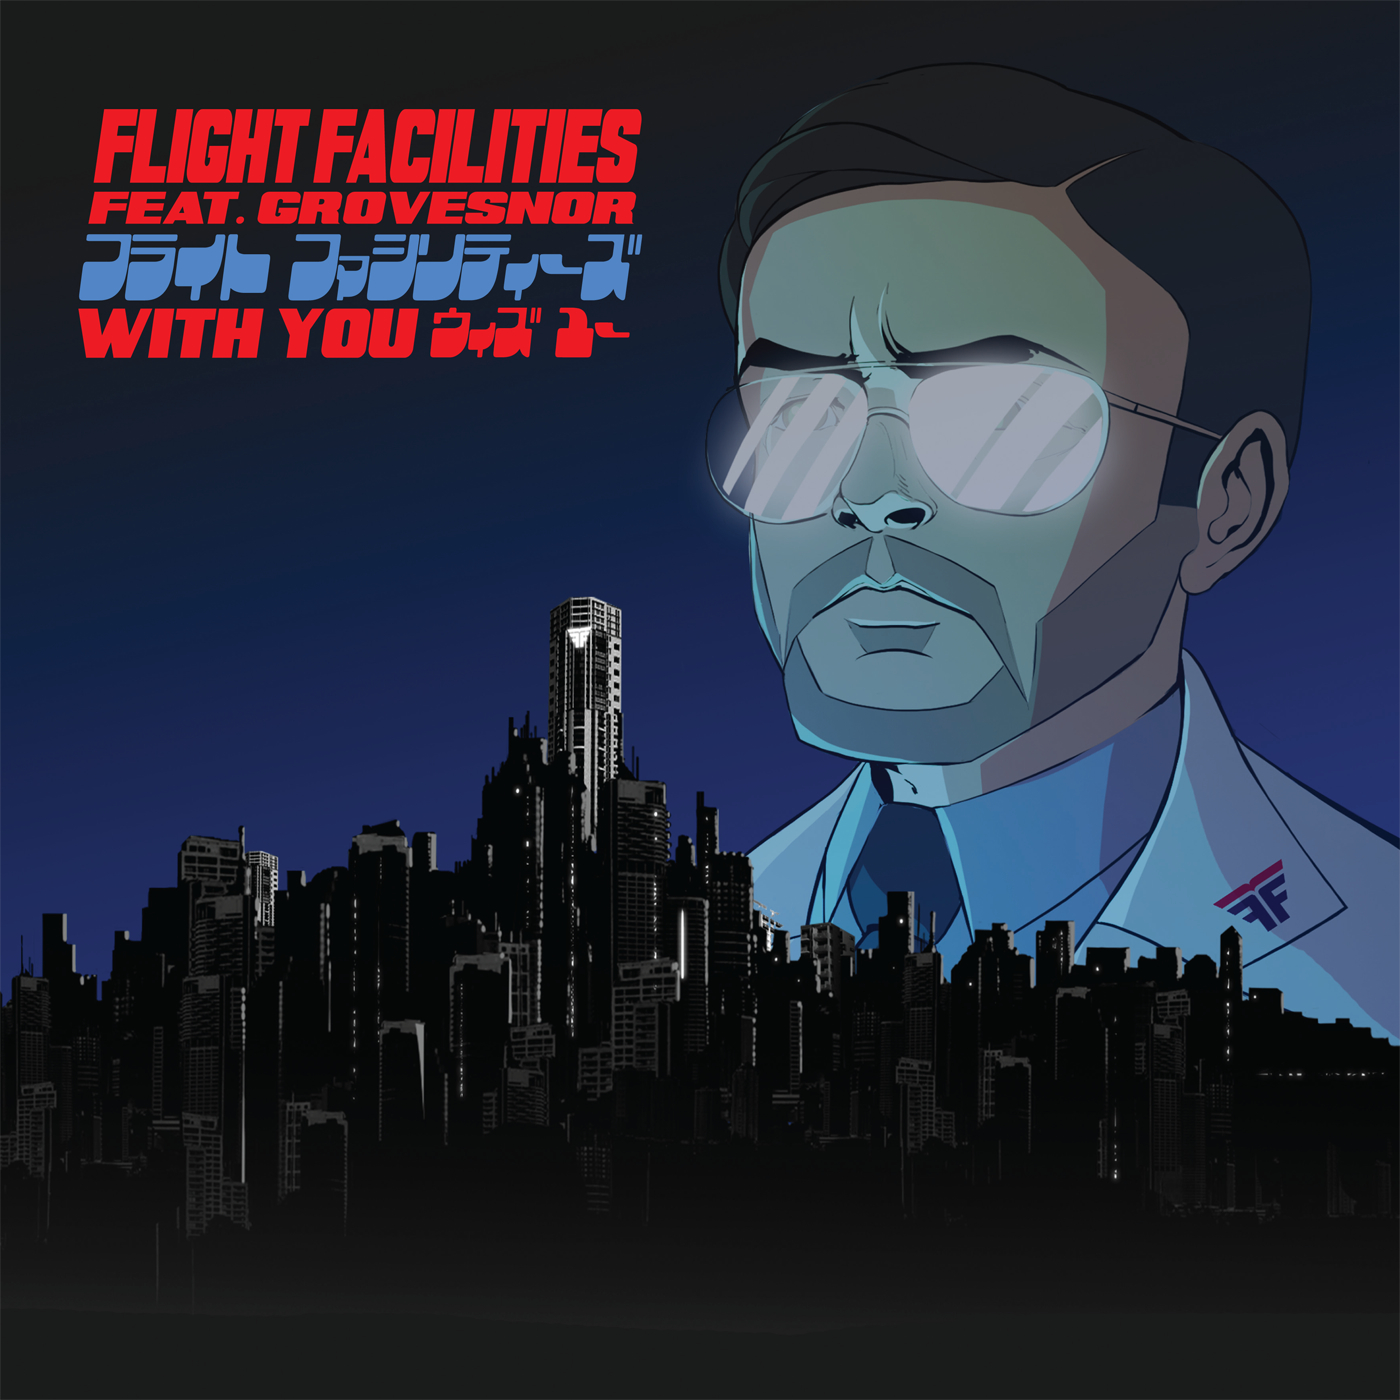 flight facilities with you feat grovesnor